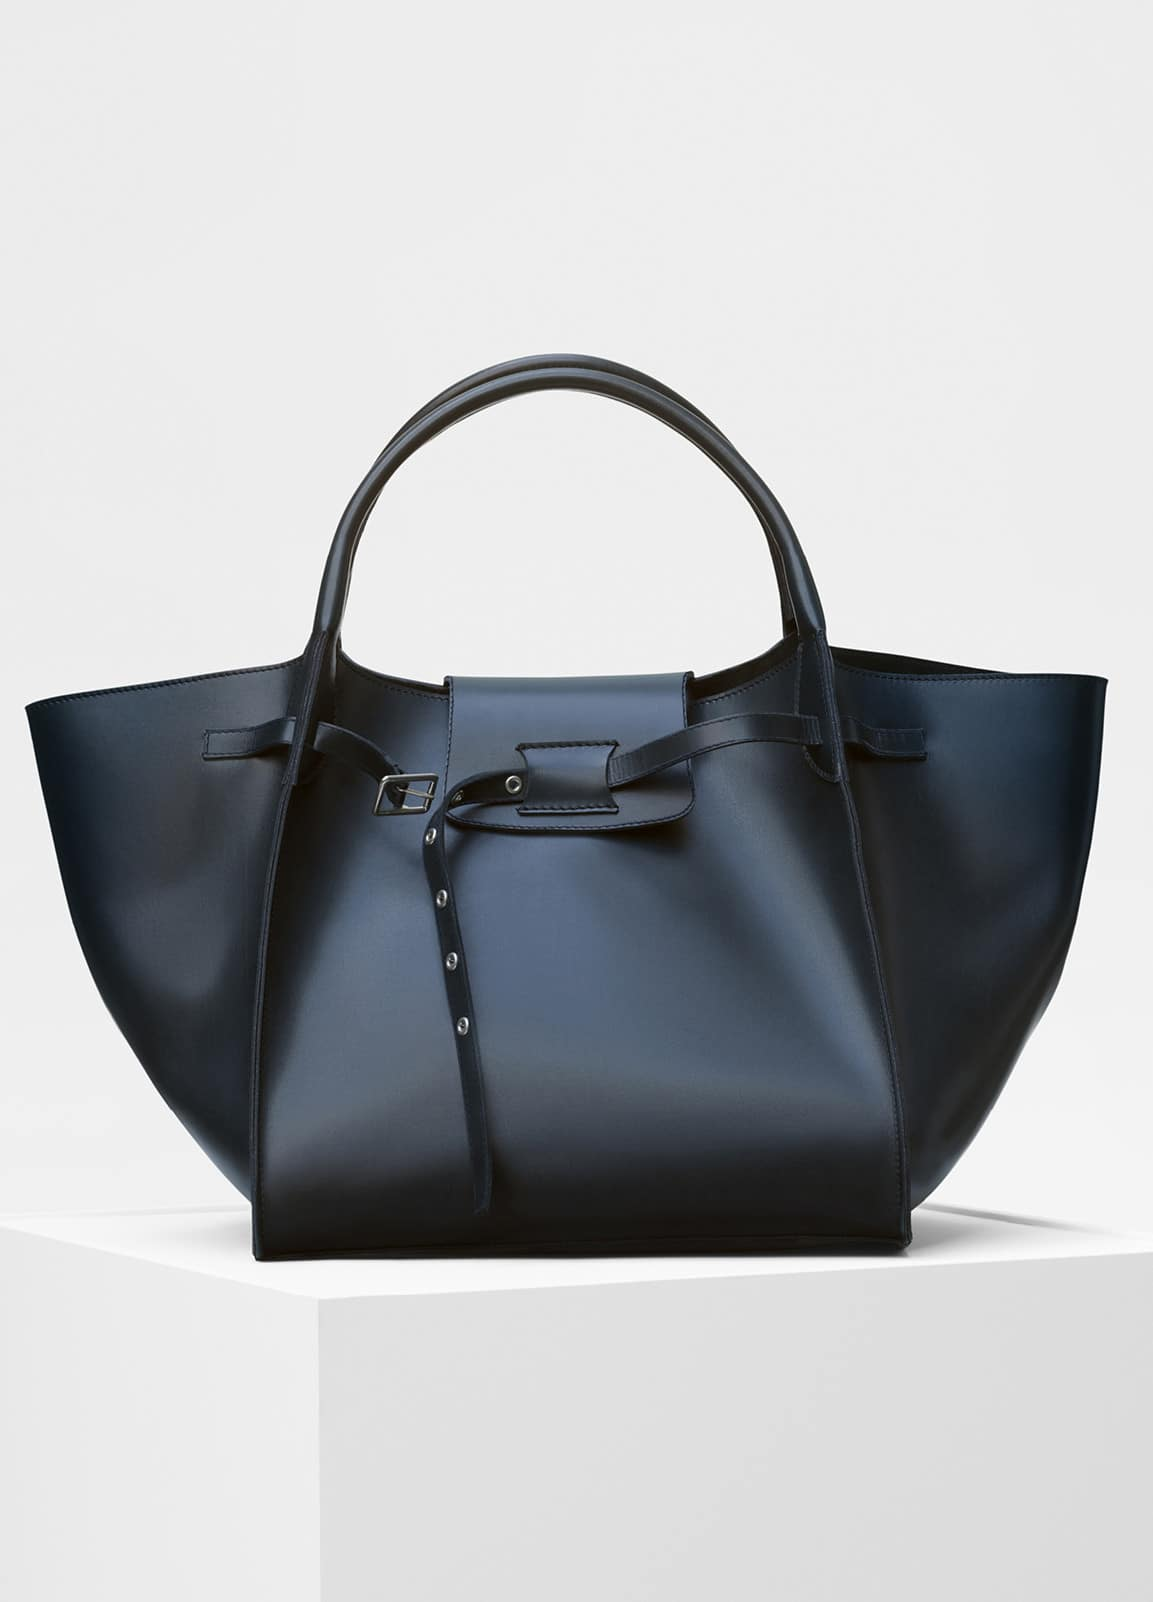 71121a6a190 Europe Celine Bag Price List Reference Guide